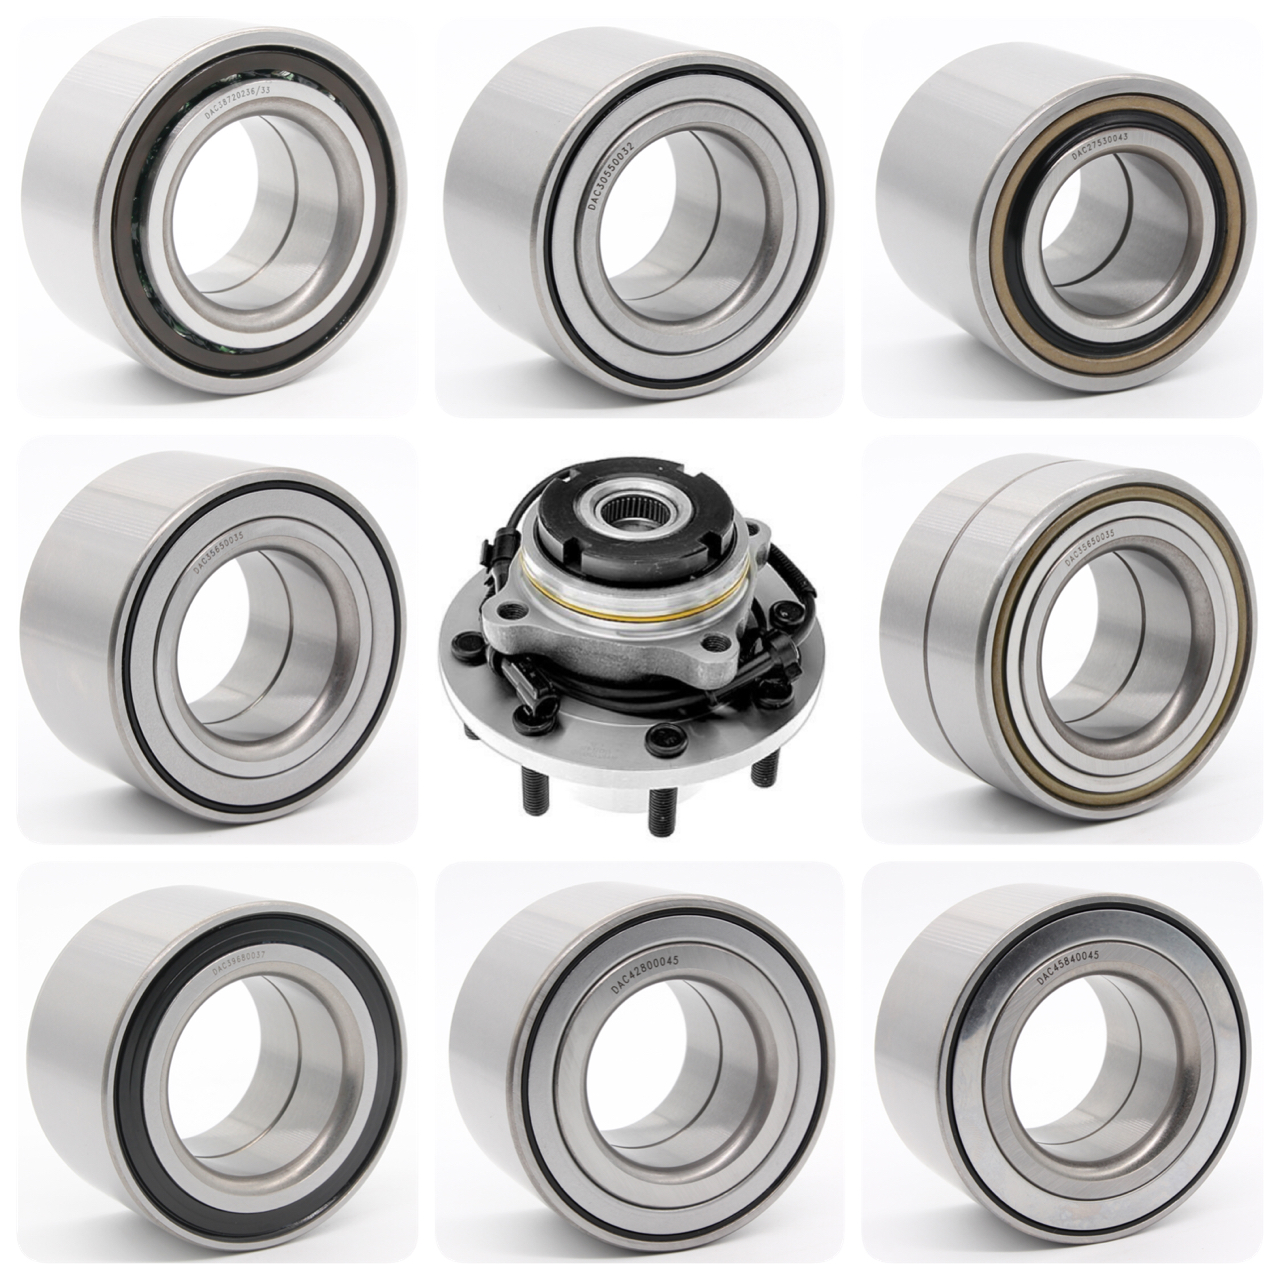 DAC30600337 Good Quality and Price Front Wheel Hub Bearing 30x60.03x37mm